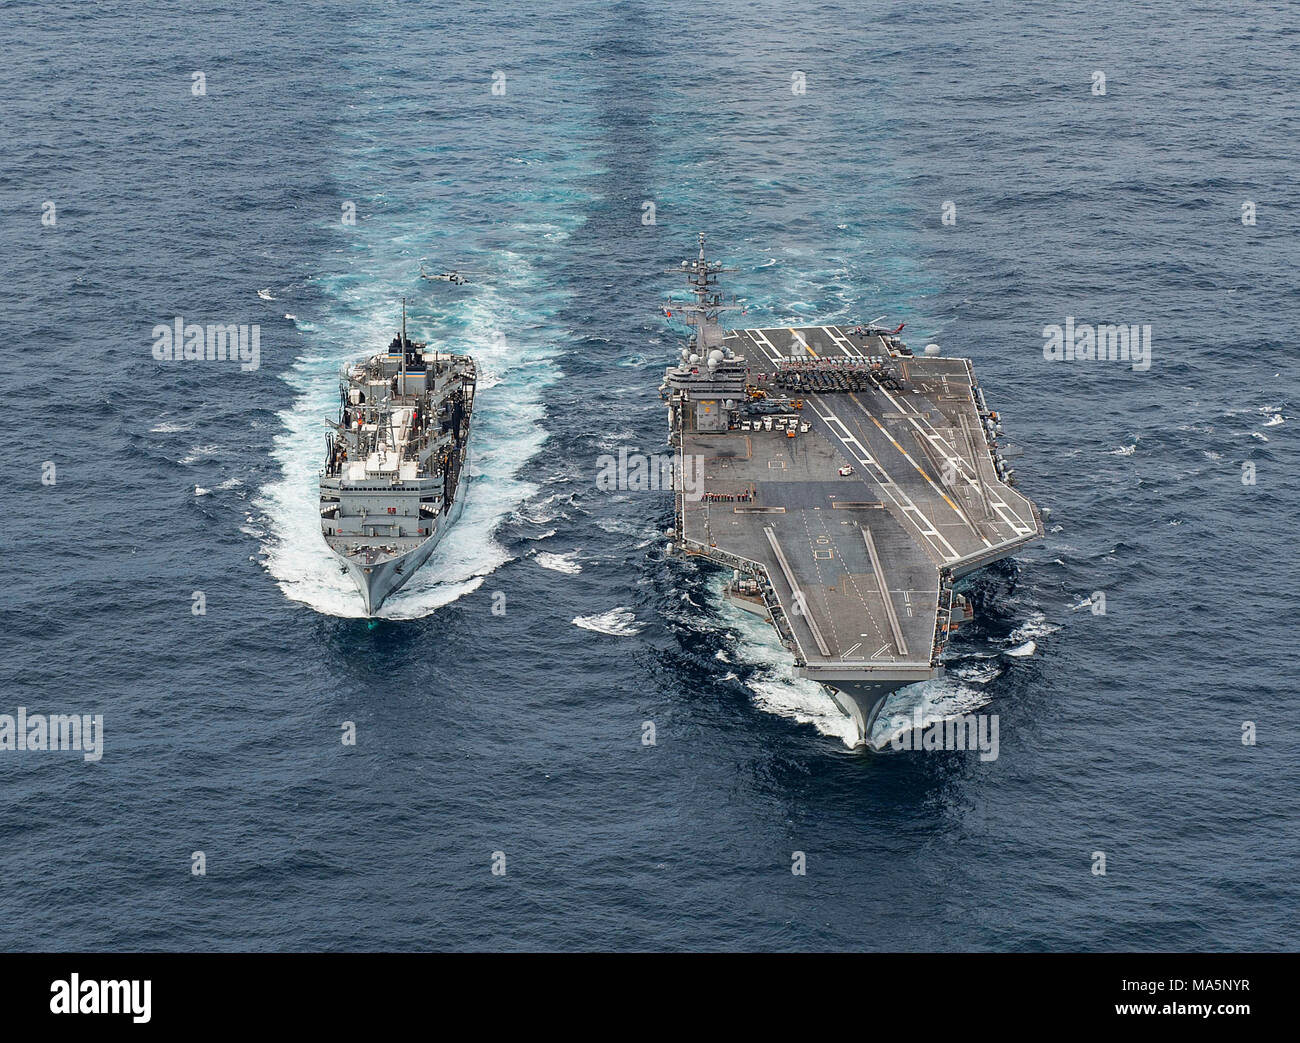 180327-N-JC445-0399 ATLANTIC OCEAN (March 27, 2018) The fast combat support ship USNS Supply (T-AOE 6) sails alongside the aircraft carrier USS George H.W. Bush (CVN 77) during a replenishment-at-sea. The ship is underway conducting sustainment exercises to maintain carrier readiness. (U.S. Navy photo by Mass Communication Specialist 3rd Class Mario Coto) - Stock Image